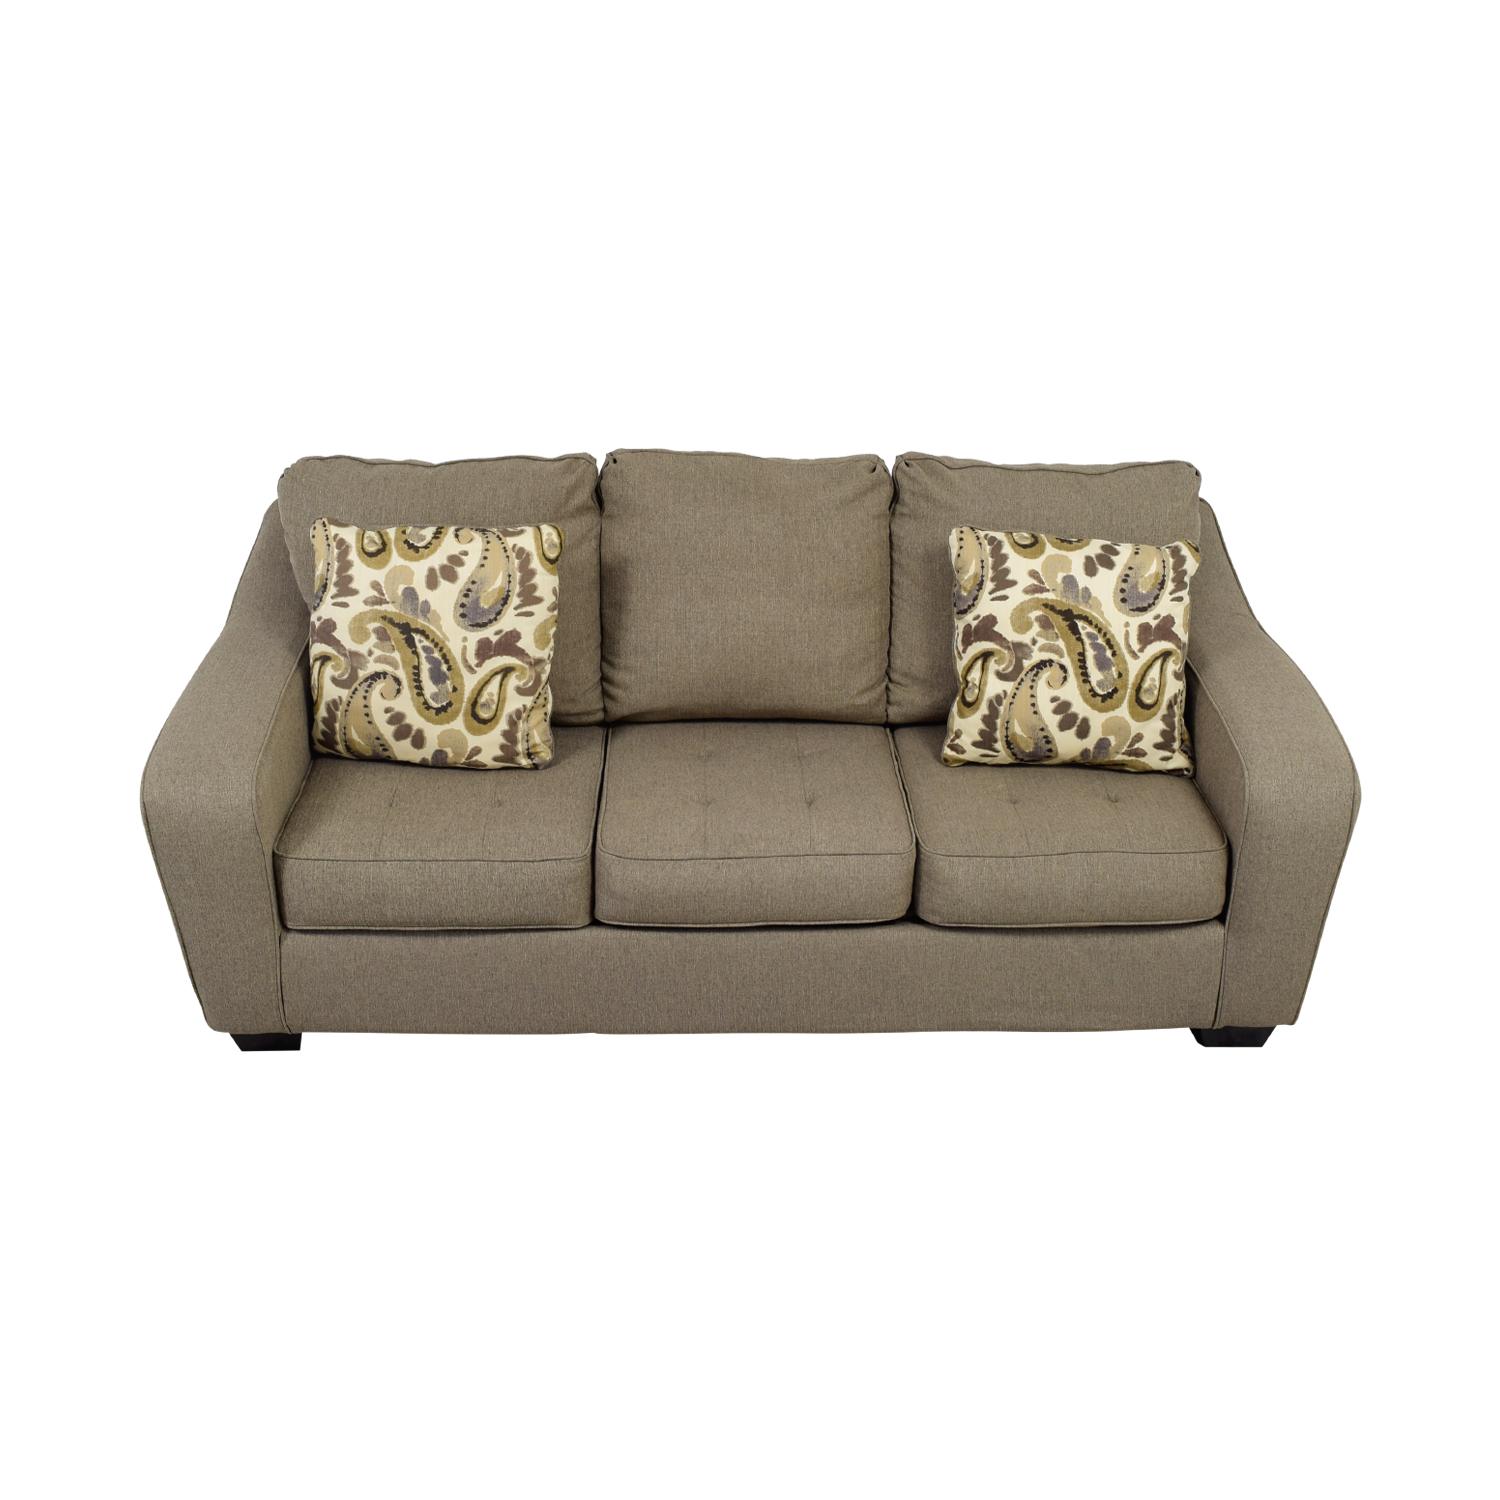 Ashley Furniture Ashley Furniture Grey Three-Cushion Couch Grey